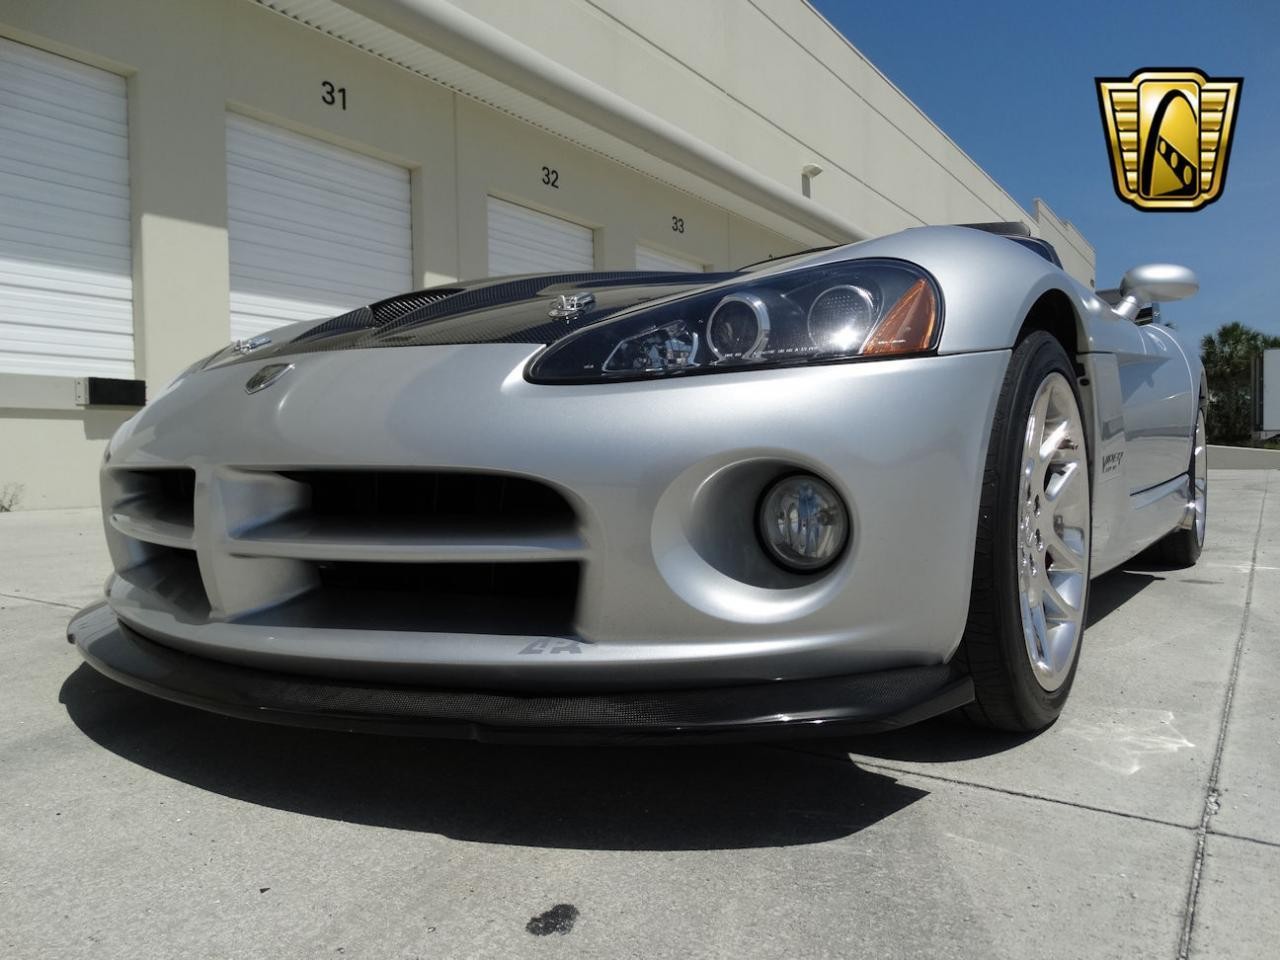 Large Picture of '04 Dodge Viper located in Florida Offered by Gateway Classic Cars - Fort Lauderdale - L6GU